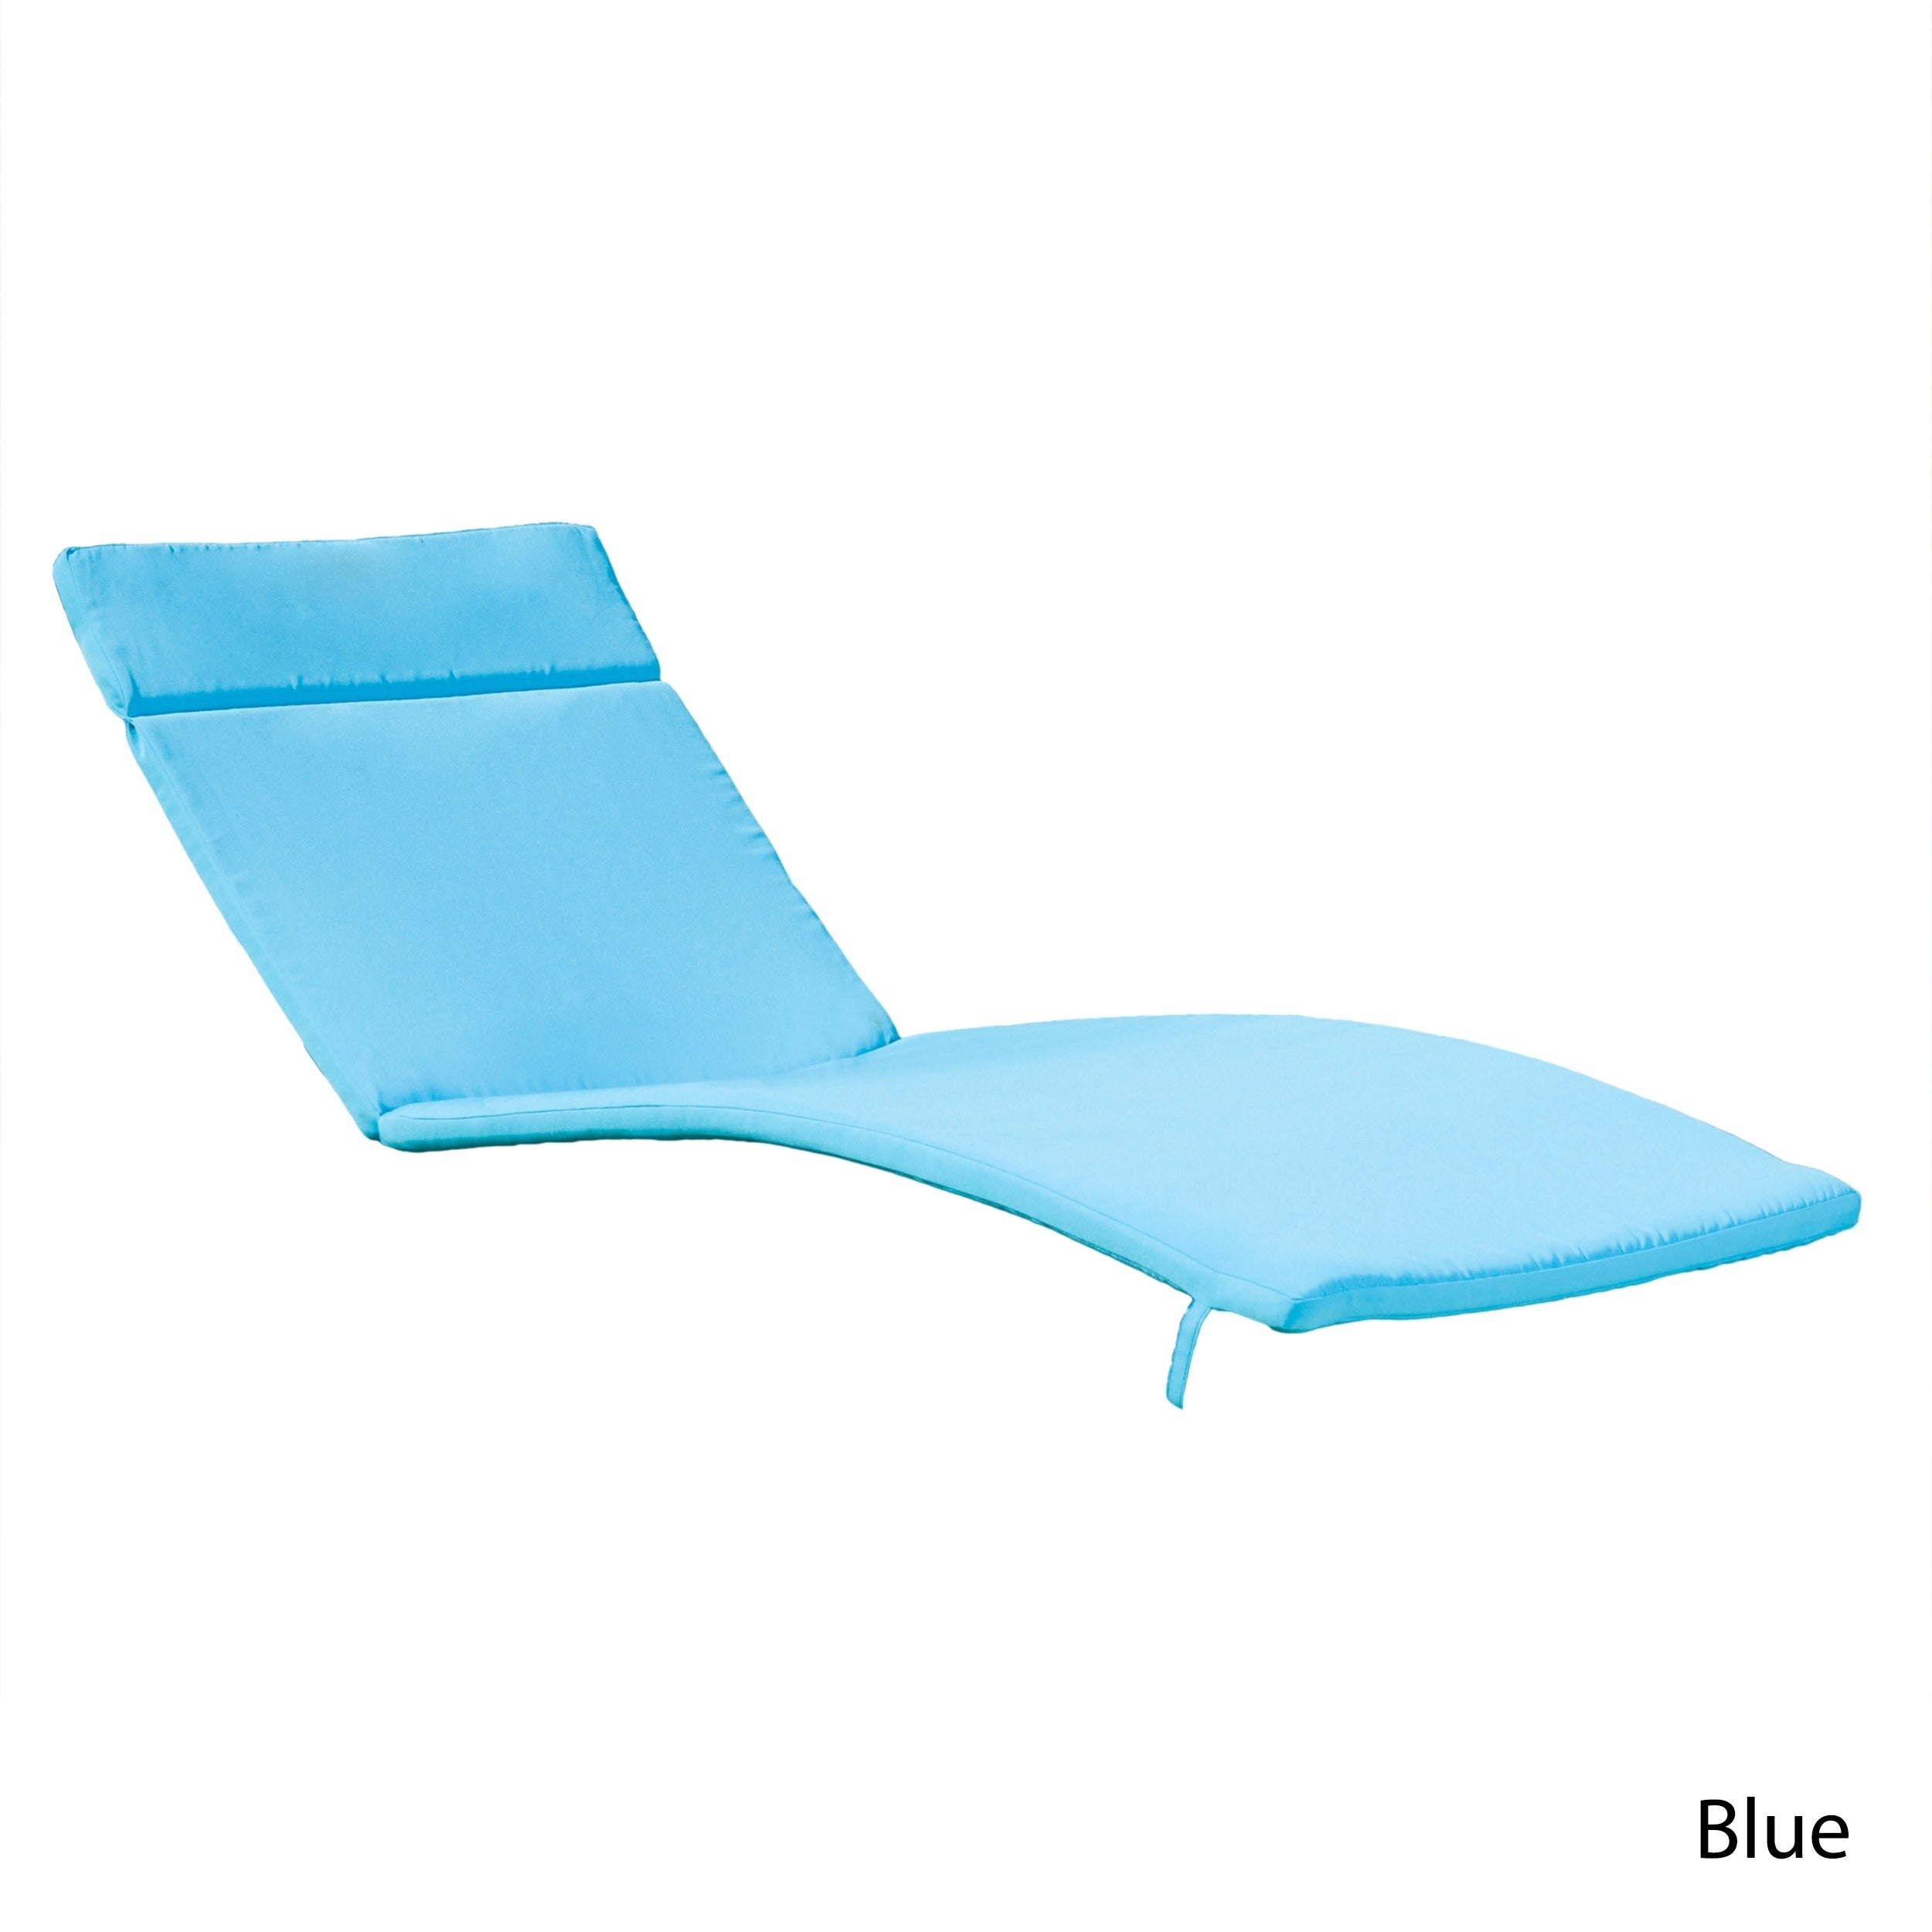 Sienna Outdoor Colored Water Resistant Chaise Lounge Cushion Only By Christopher Knight Home On Free Shipping Today